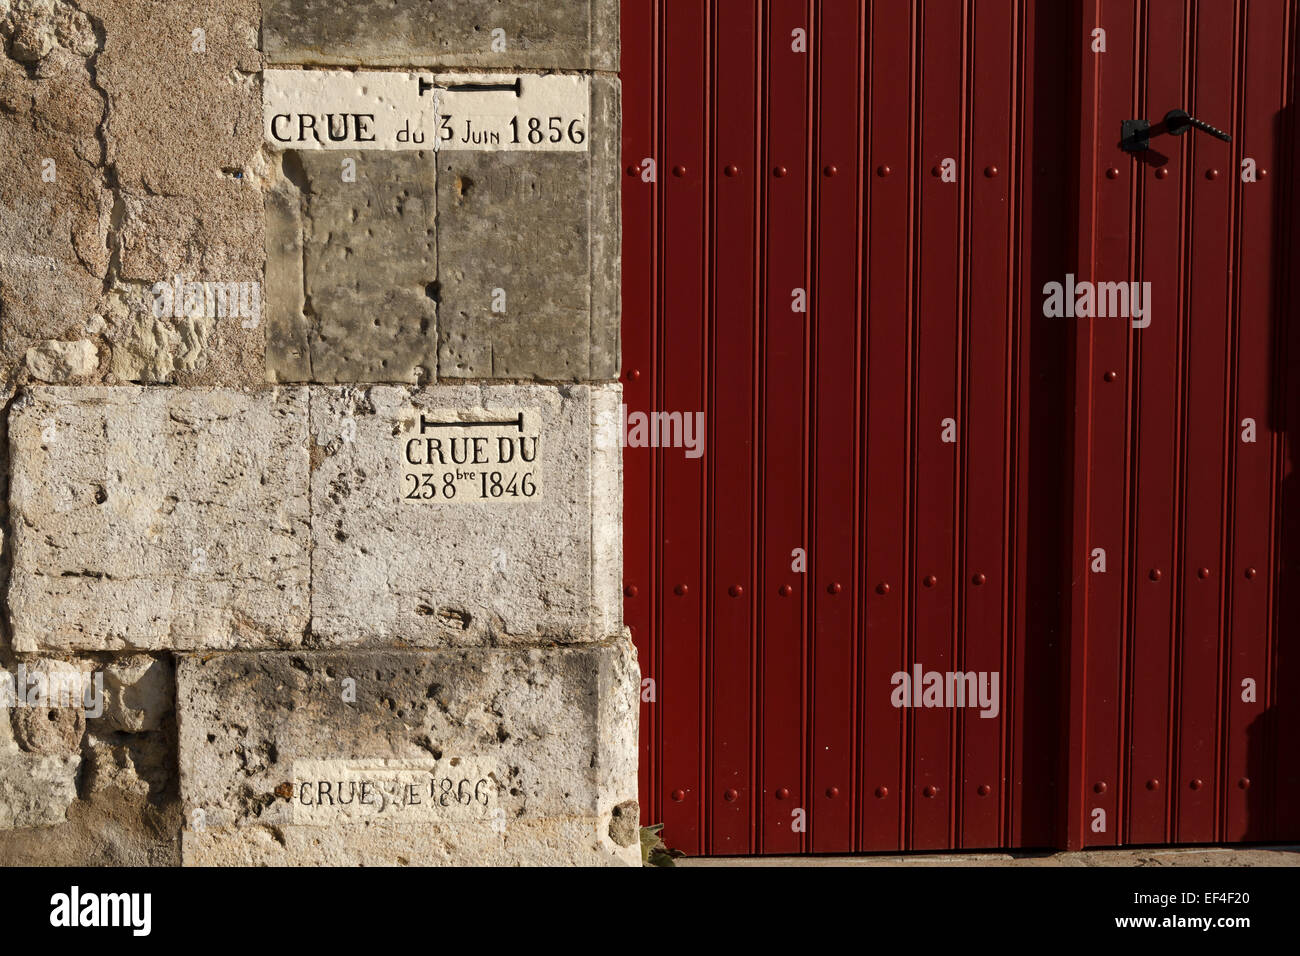 Writing historic flood level on a stone wall beside a red door, Amboise, Indre et Loire, France. - Stock Image